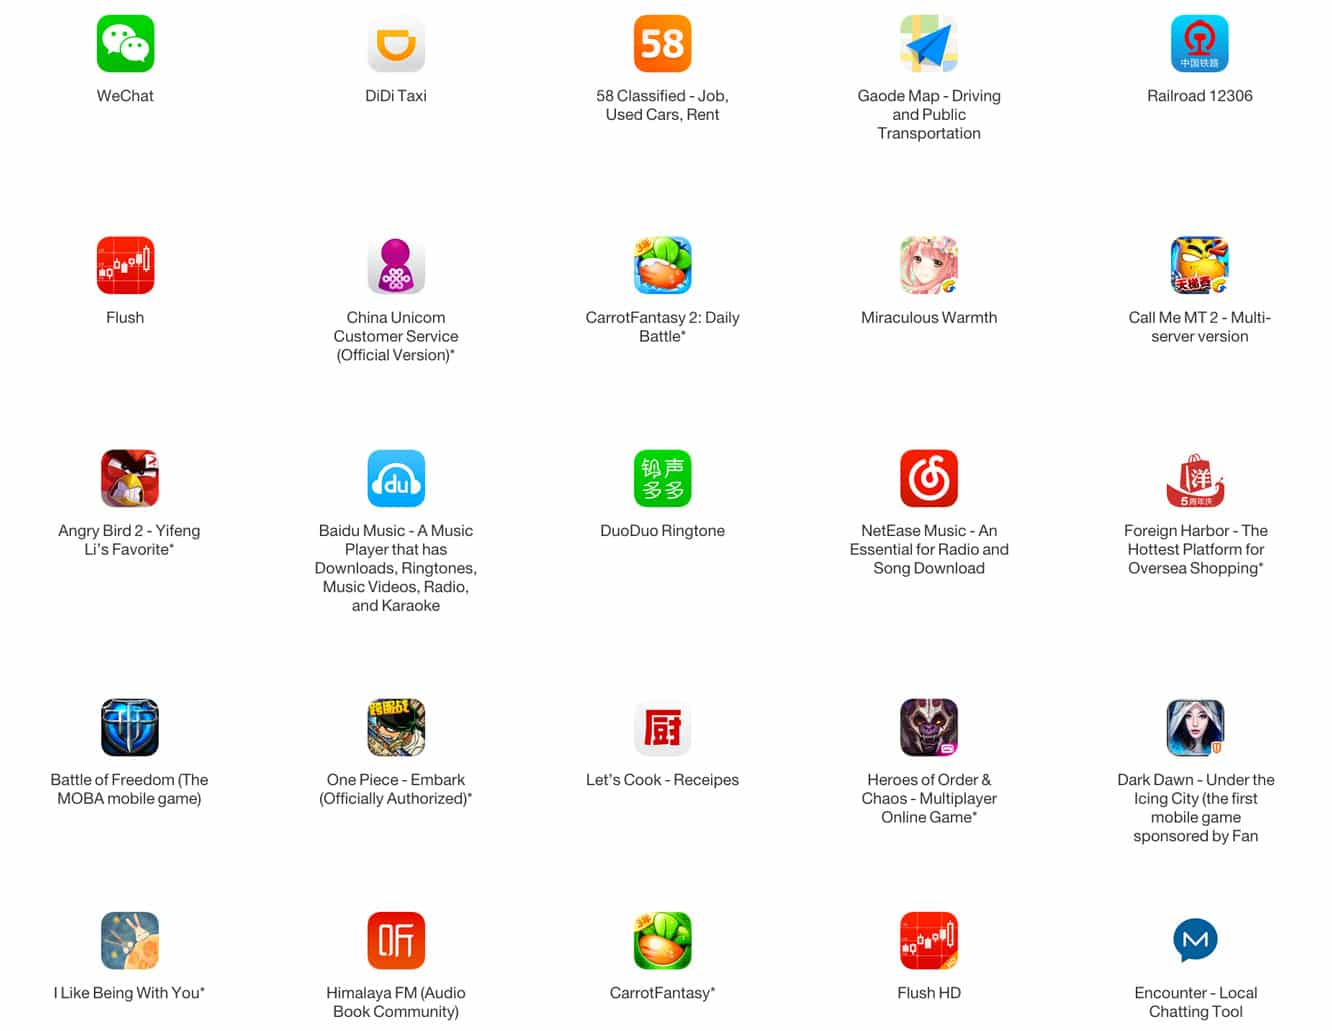 Apple posts XcodeGhost Q&A, lists affected apps